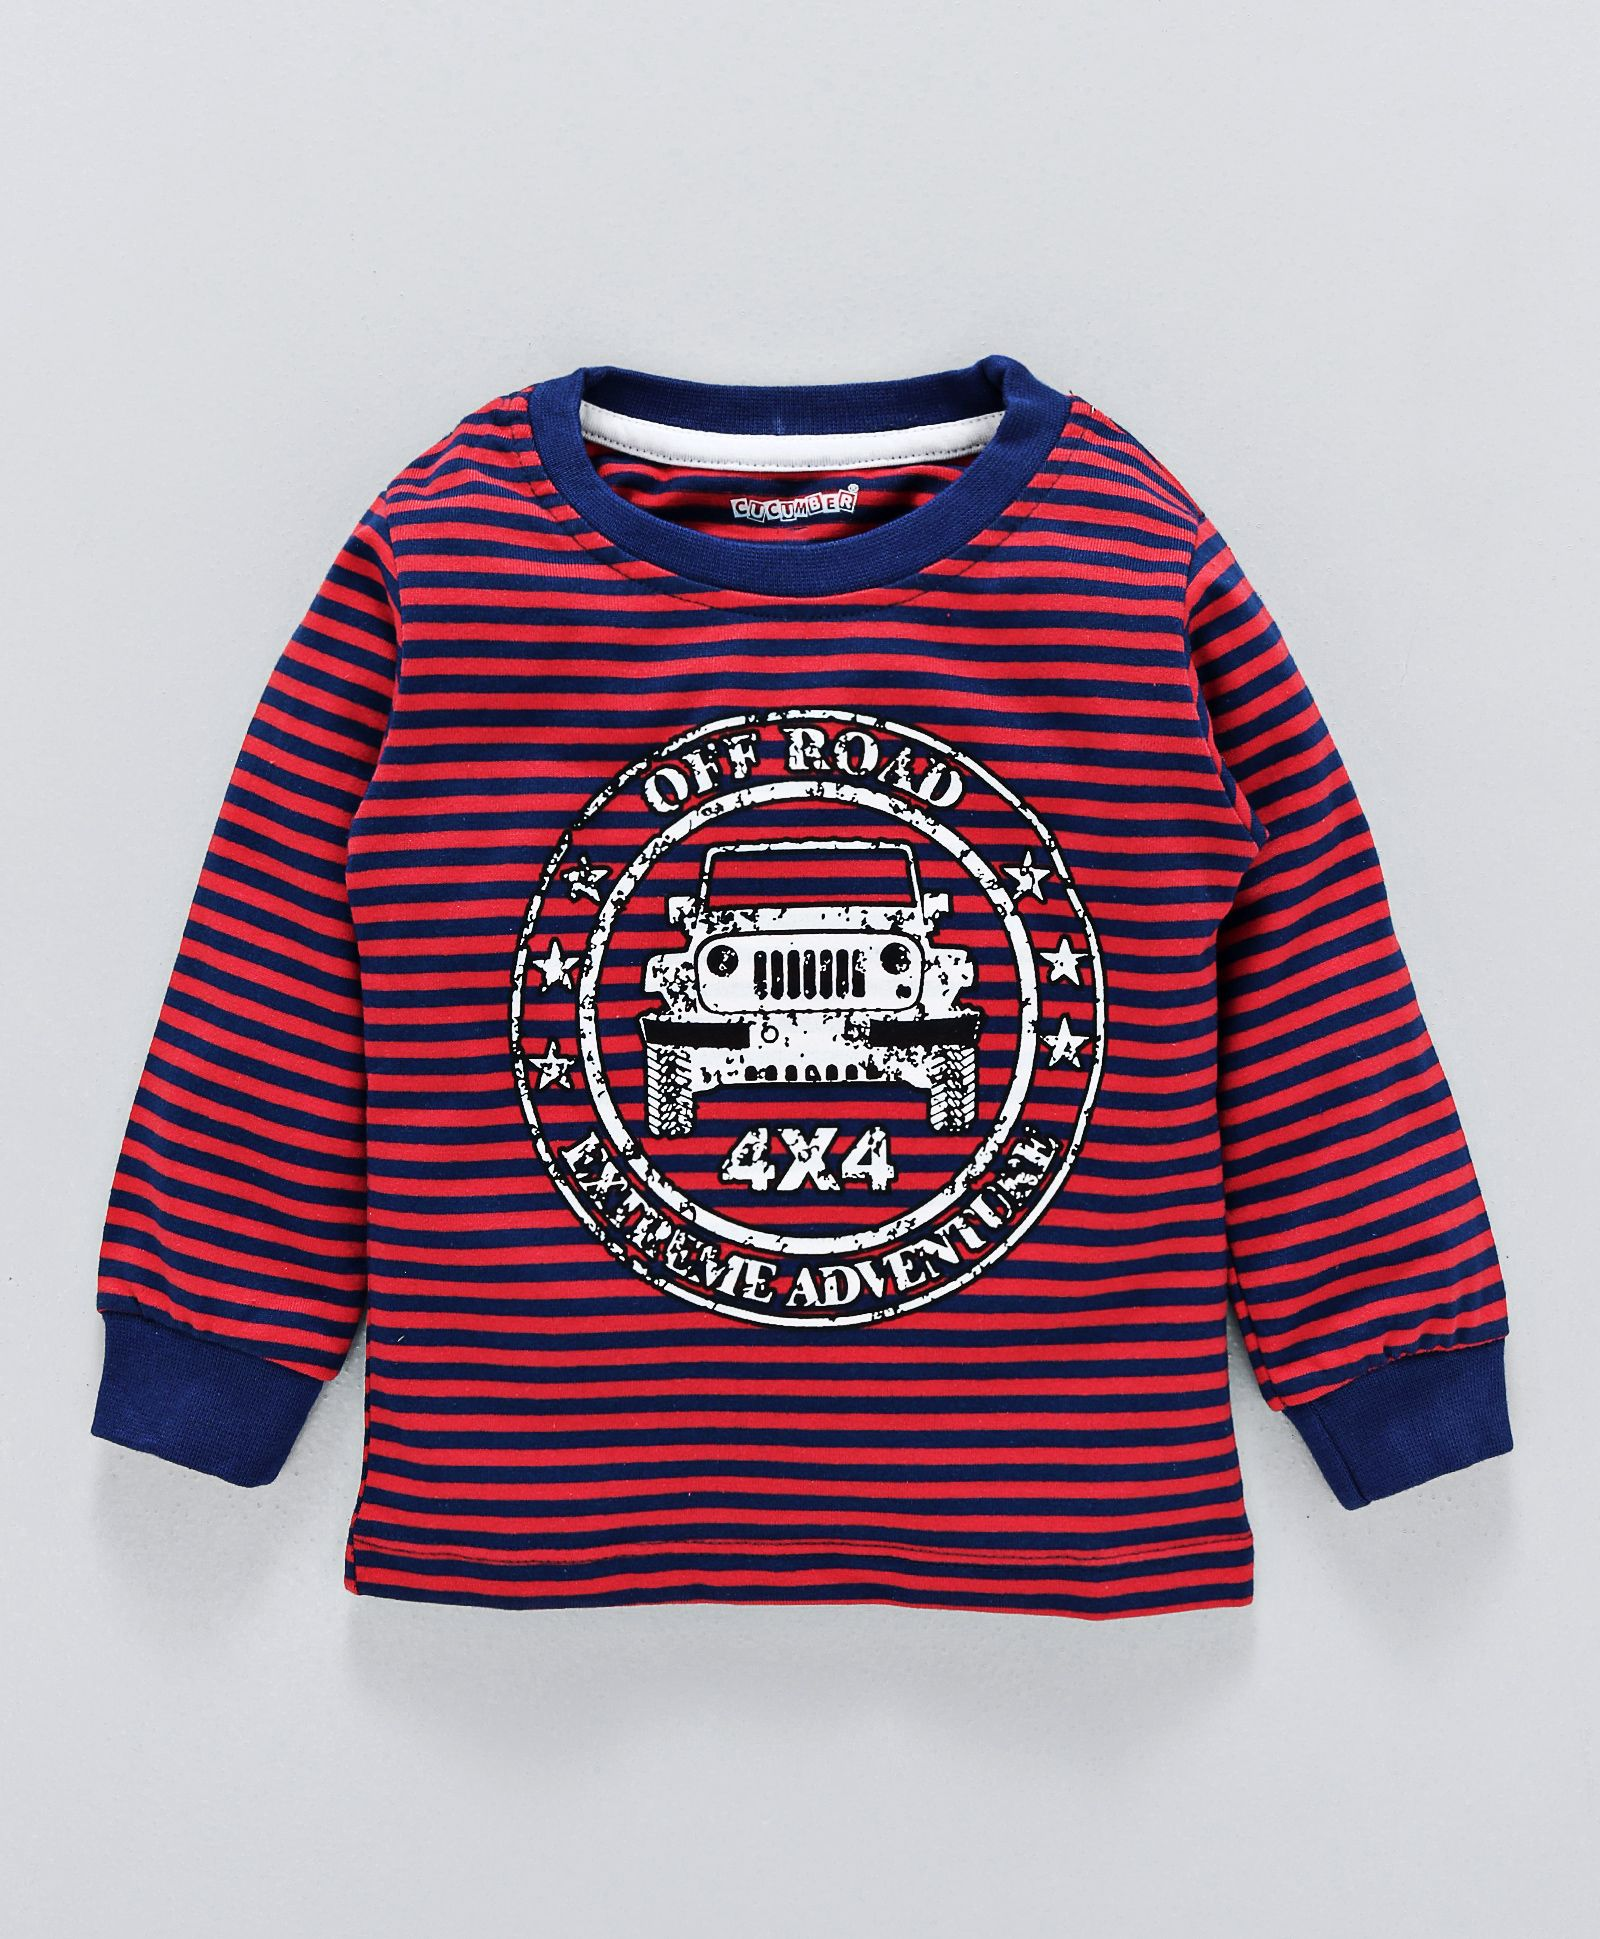 49de022aff Buy Cucumber Full Sleeves Striped Tee Car Print Red for Boys (3-6 ...